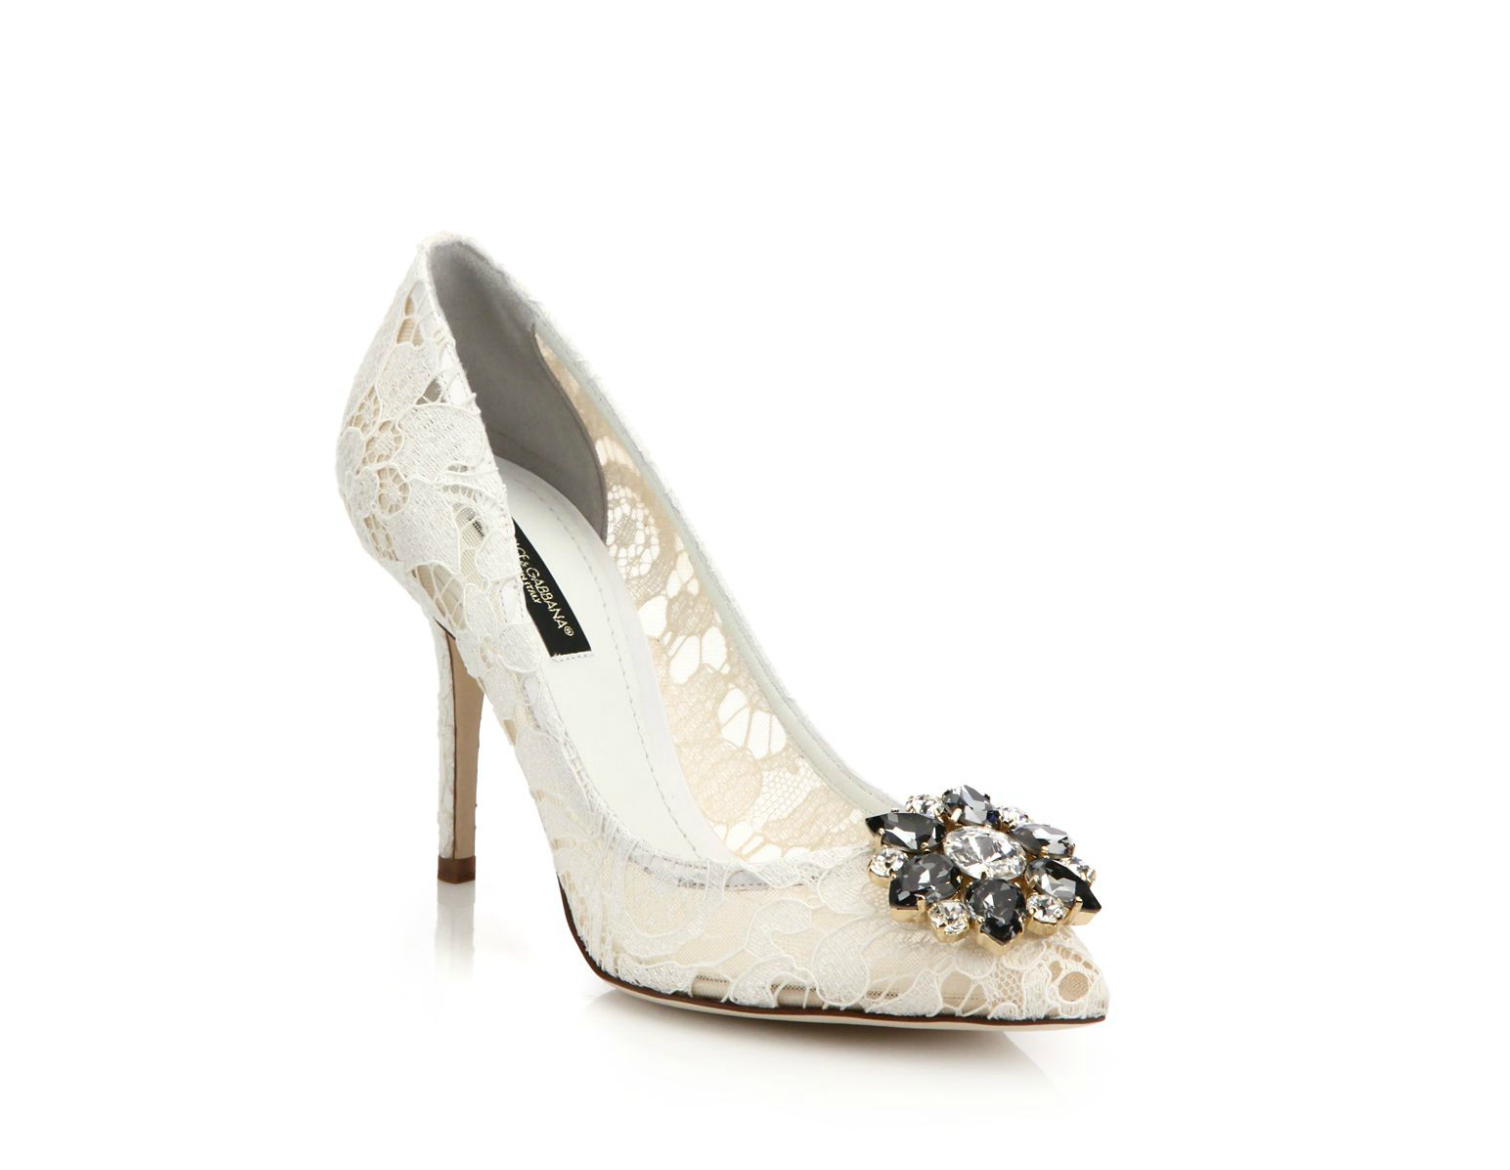 View entire slideshow: Fairytale Wedding Shoes on http://www.stylemepretty.com/collection/4231/